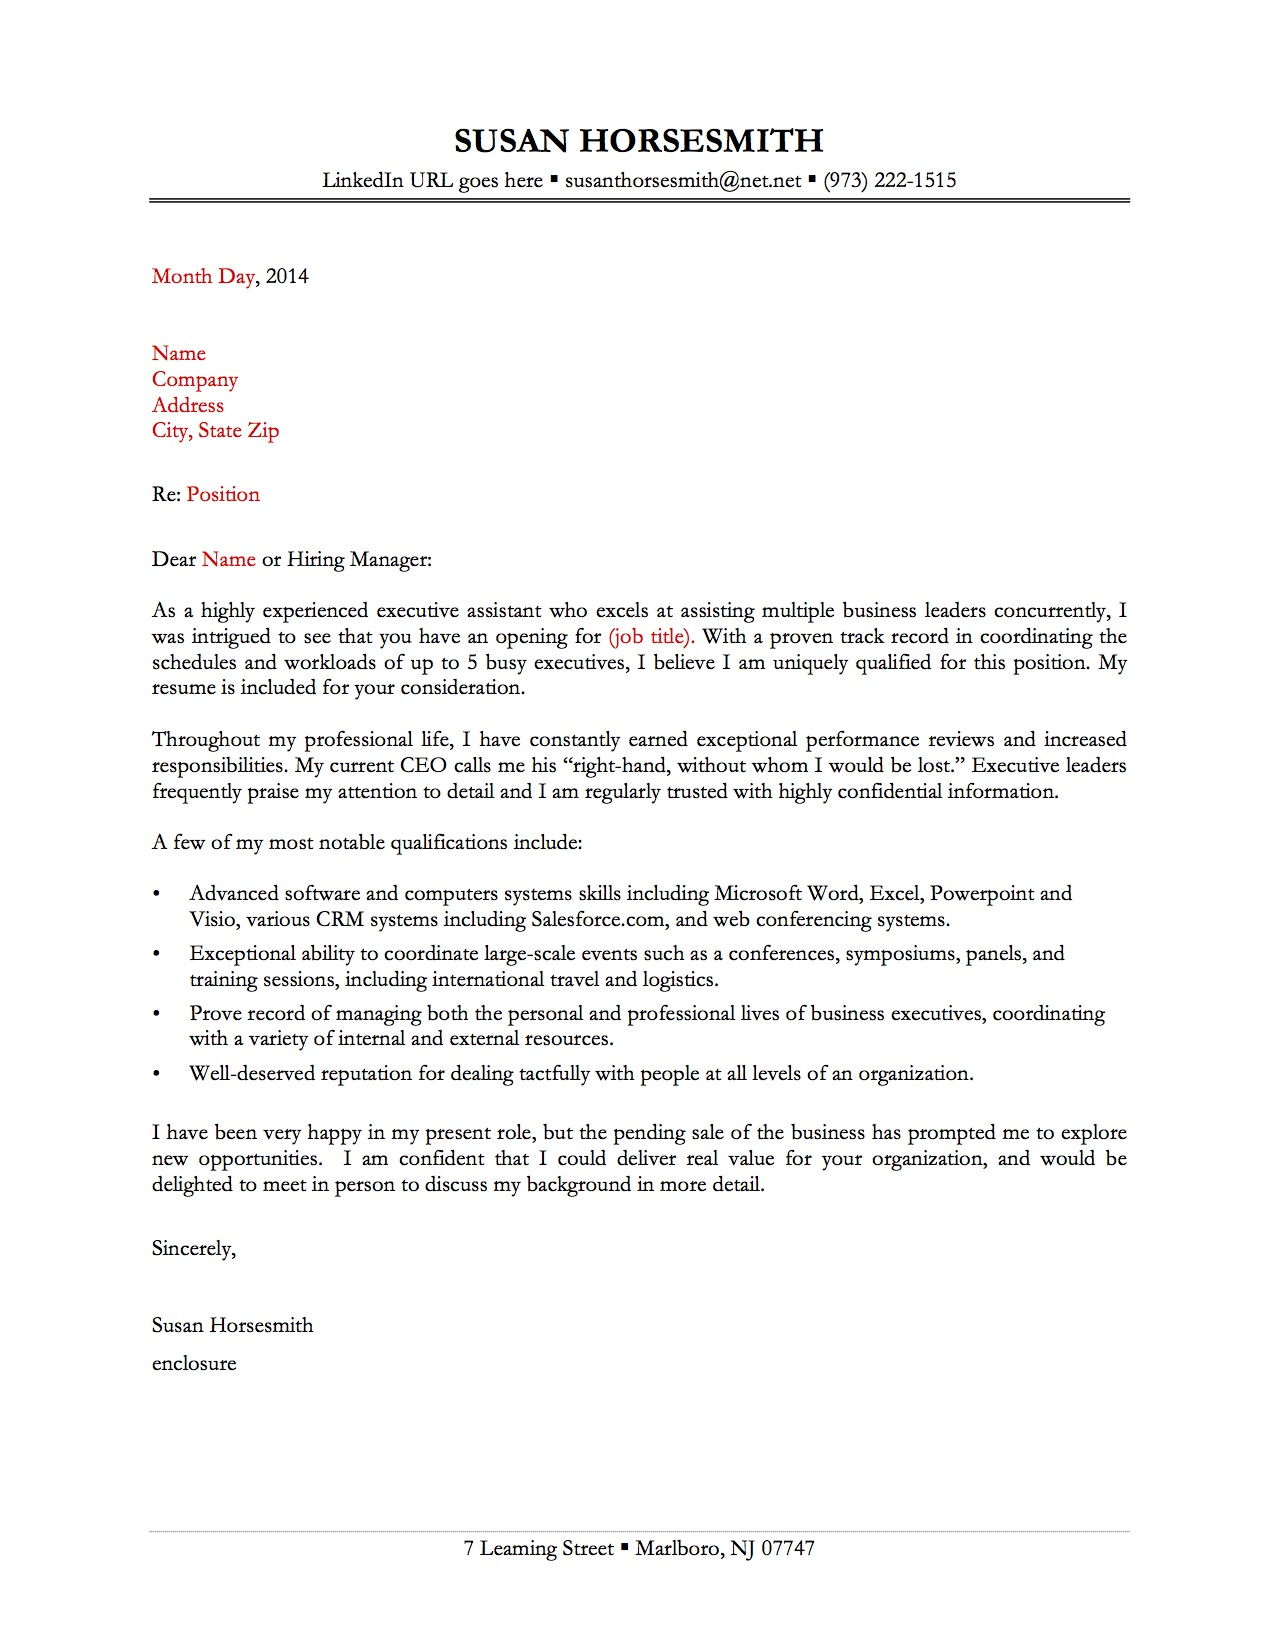 sample cover letter 1 - Write Me A Cover Letter